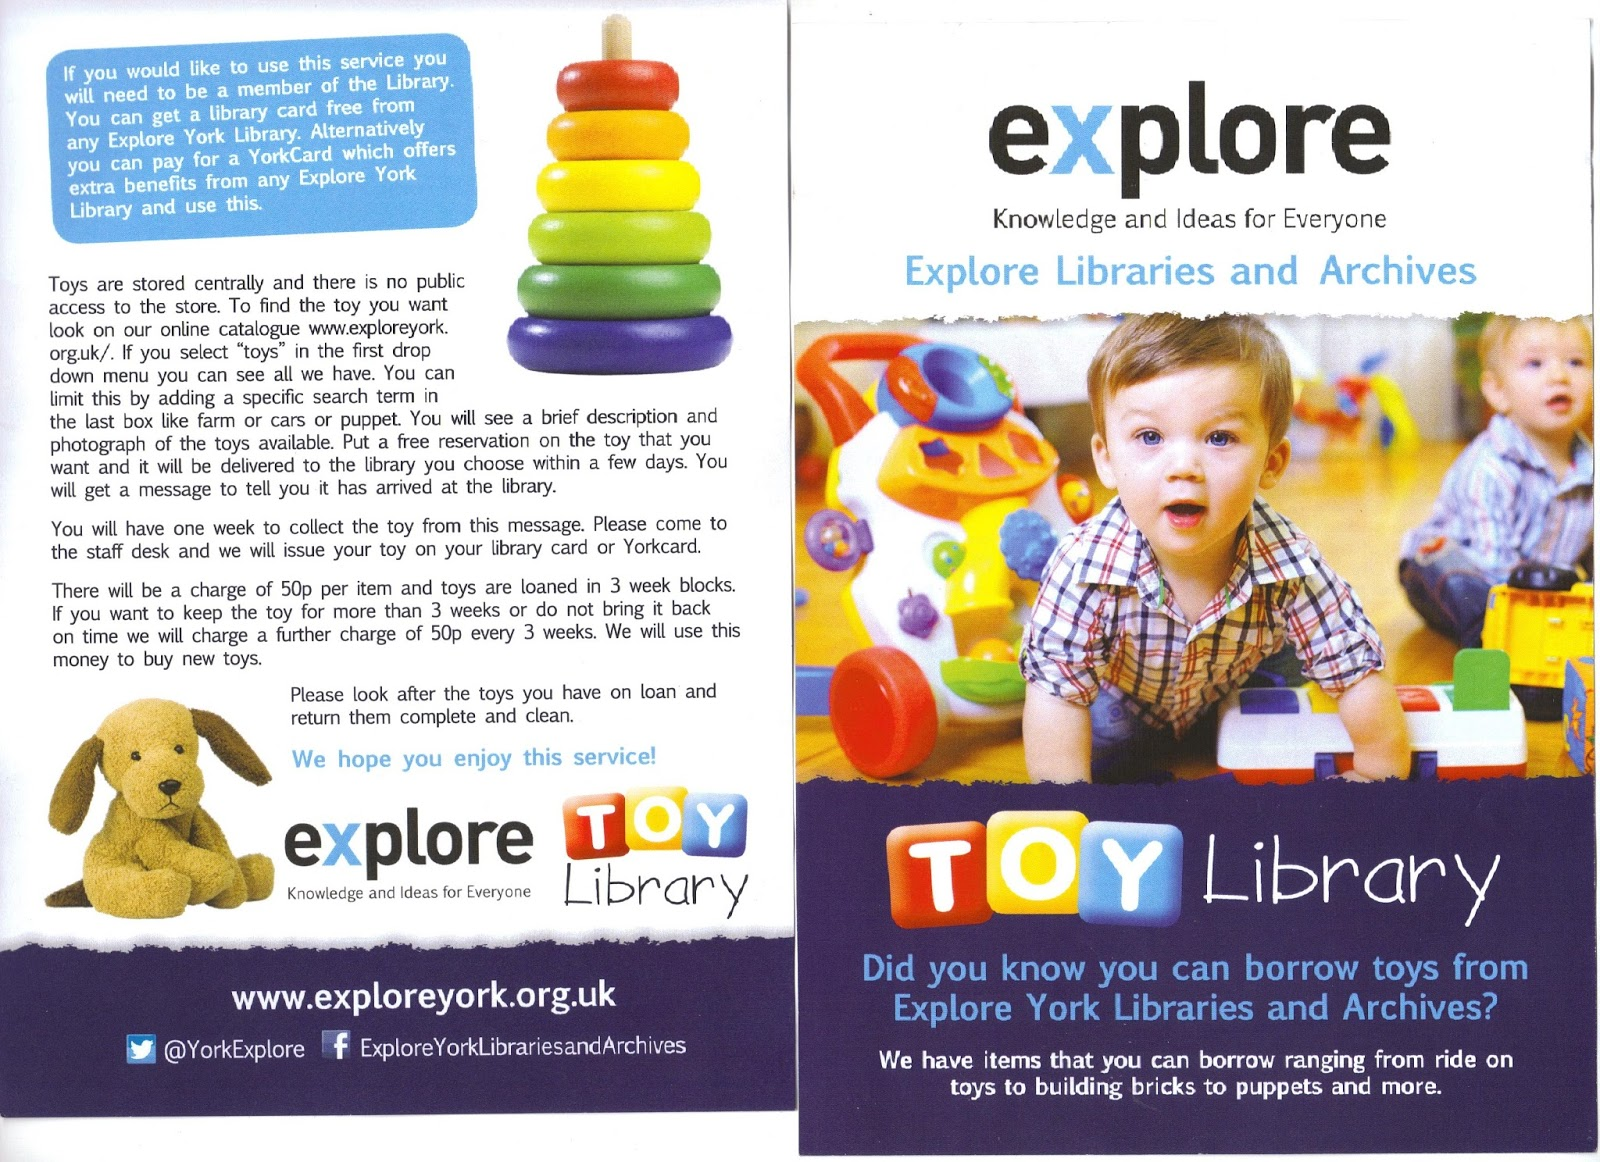 Toy libraryLIBRARY 1